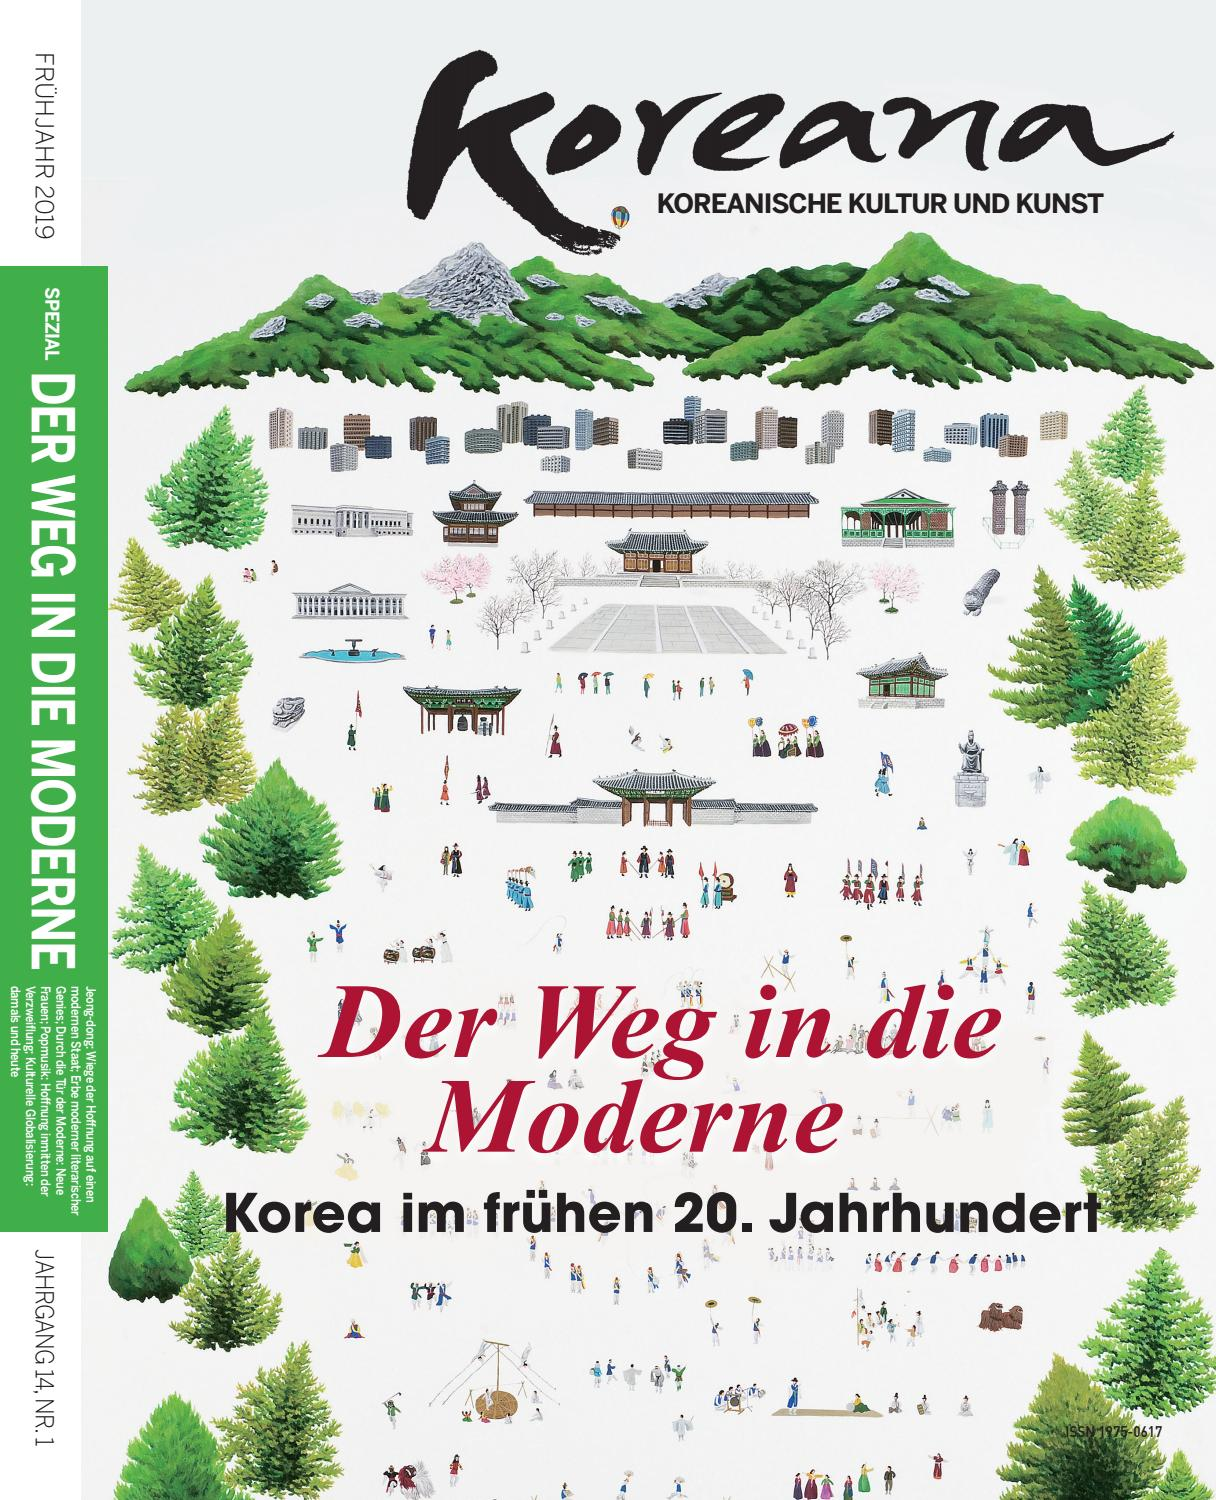 Paravent Aussprache 2019 Koreana Spring German By The Korea Foundation Issuu